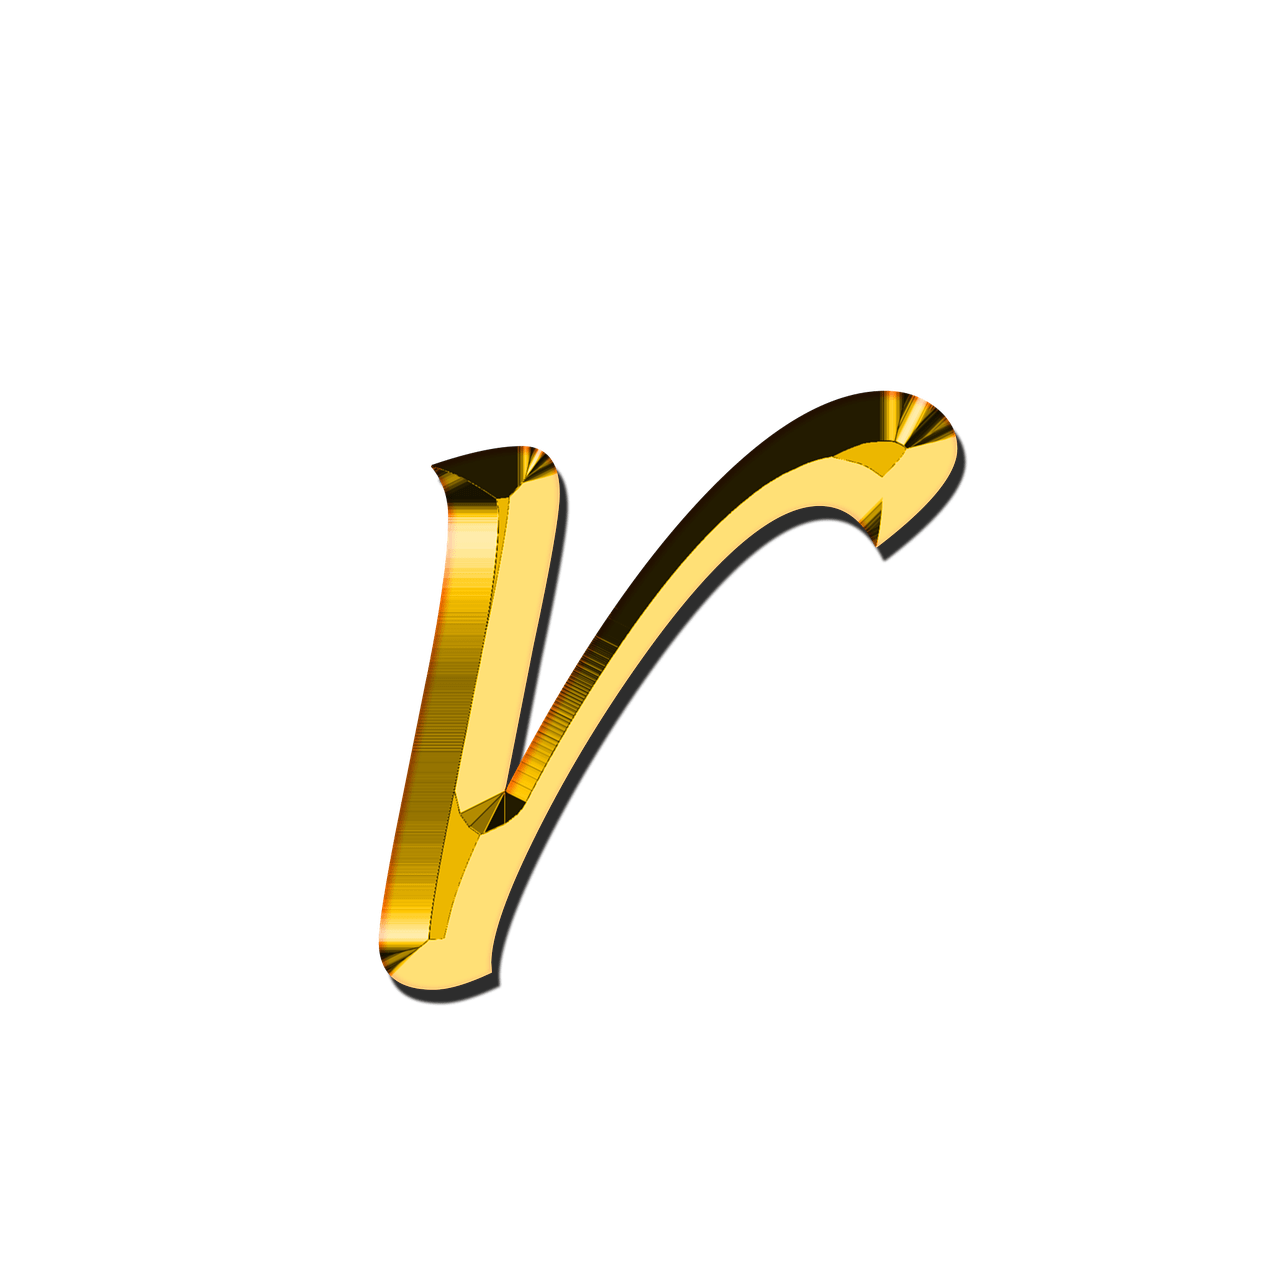 Png letter r. Small transparent stickpng